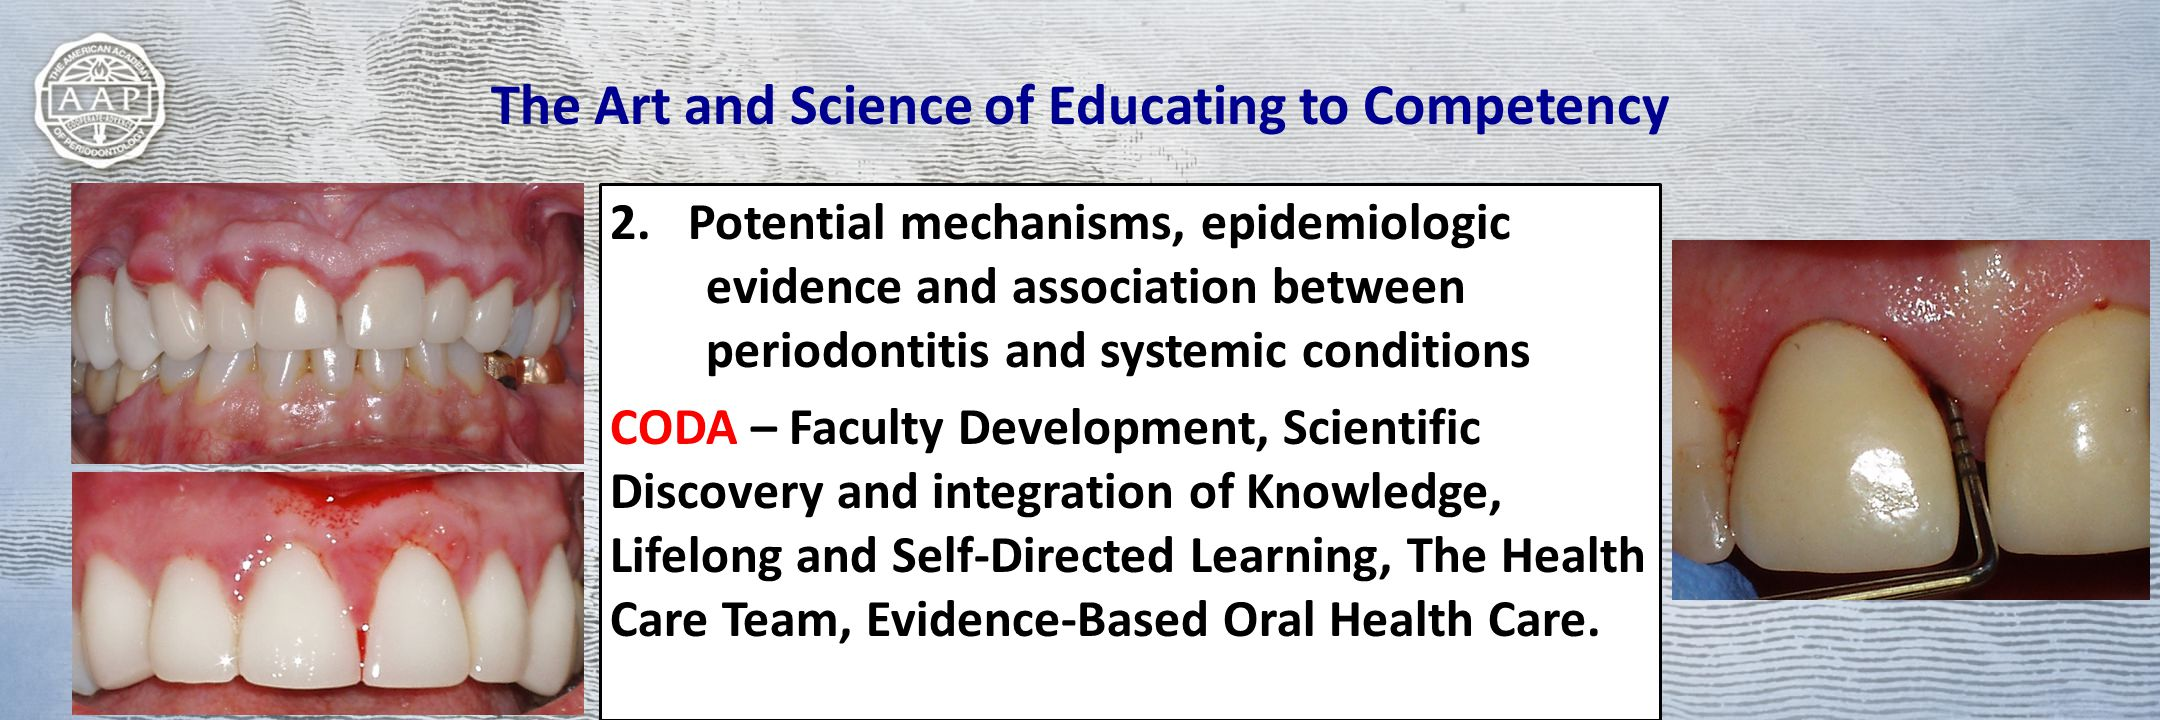 The Art and Science of Educating to Competency 2.Potential mechanisms, epidemiologic evidence and association between periodontitis and systemic condi